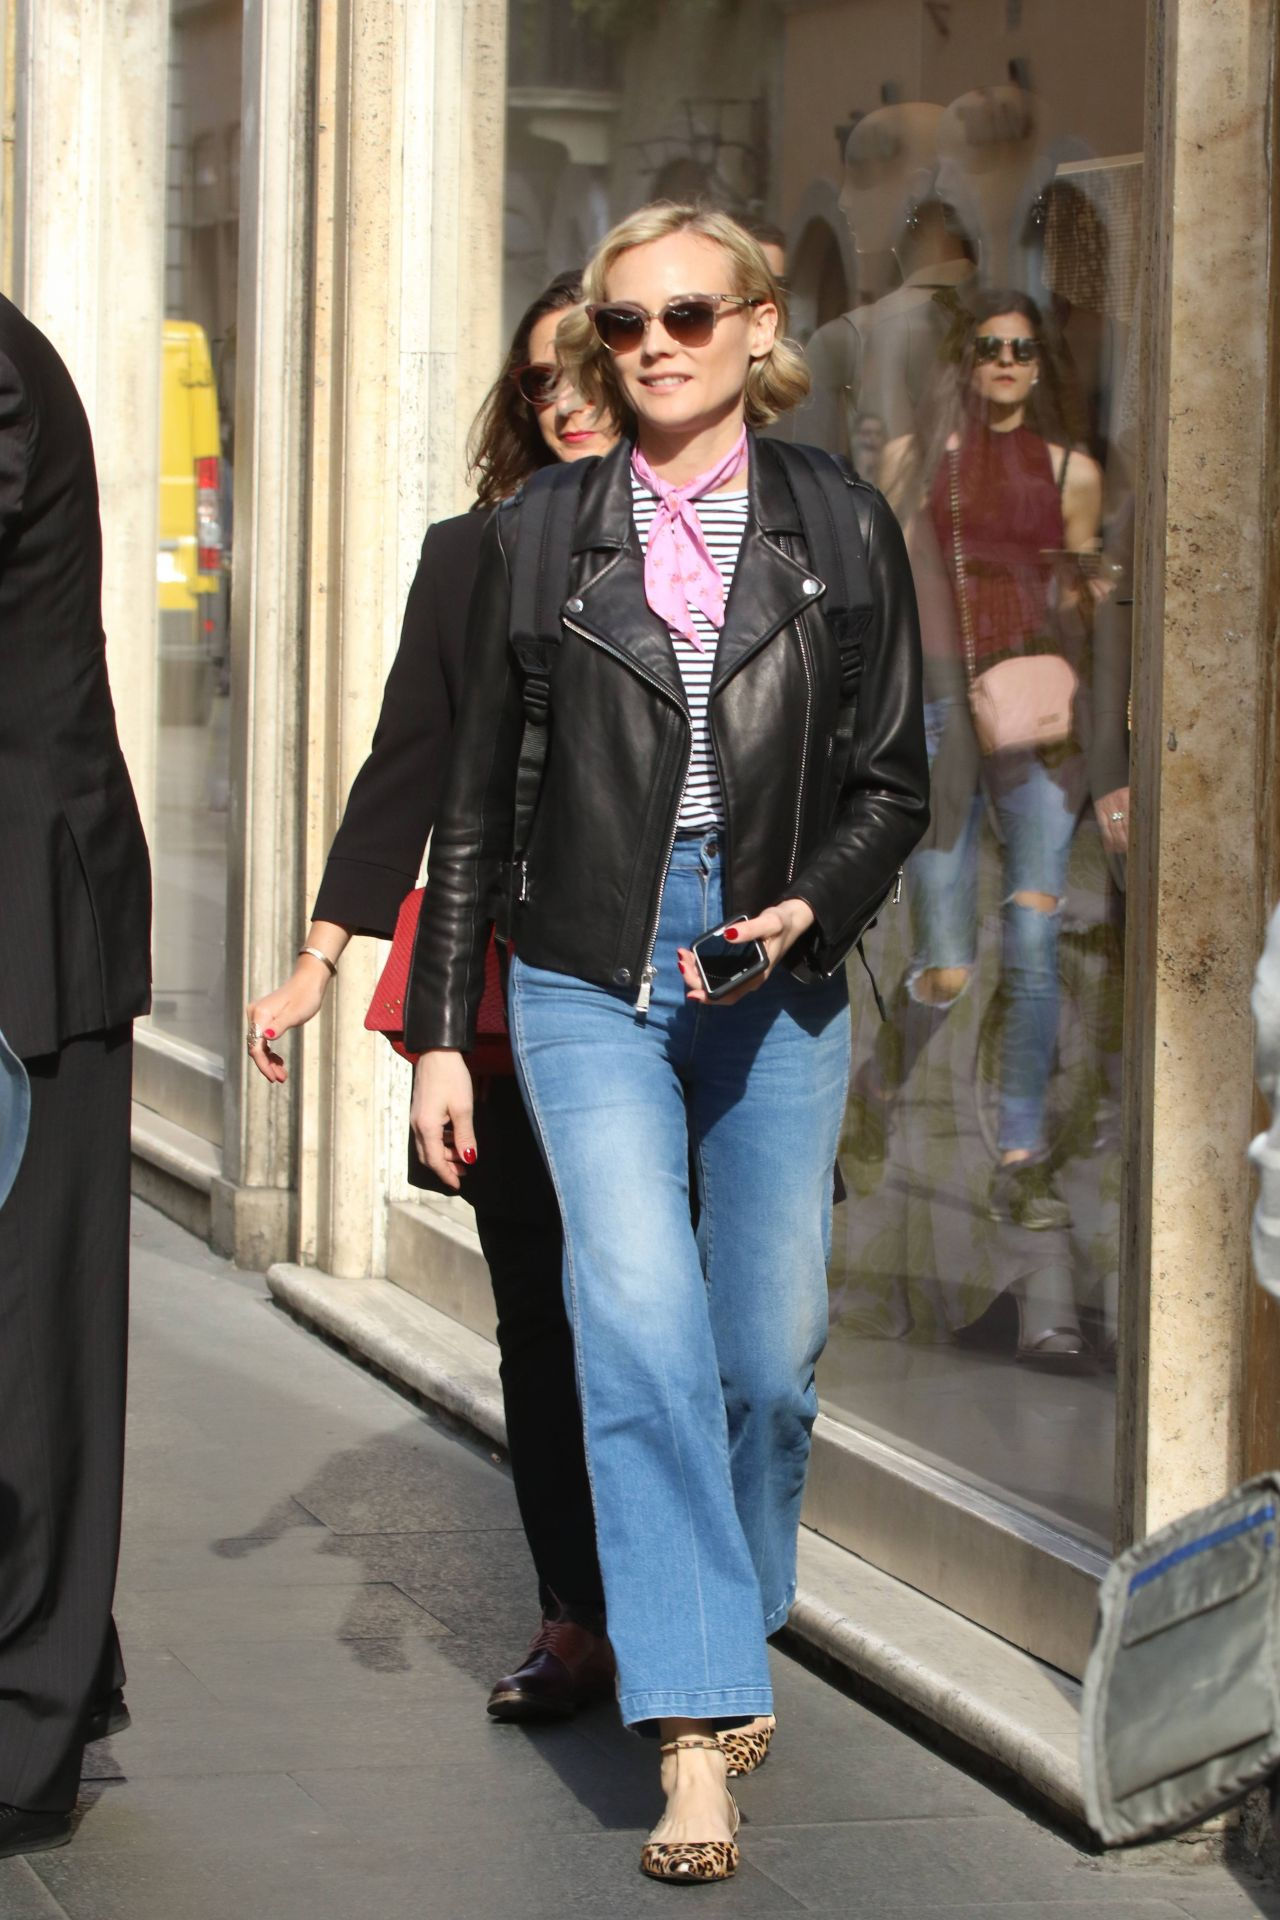 Diane Kruger Urban Outfit Rome Italy 4 6 2017